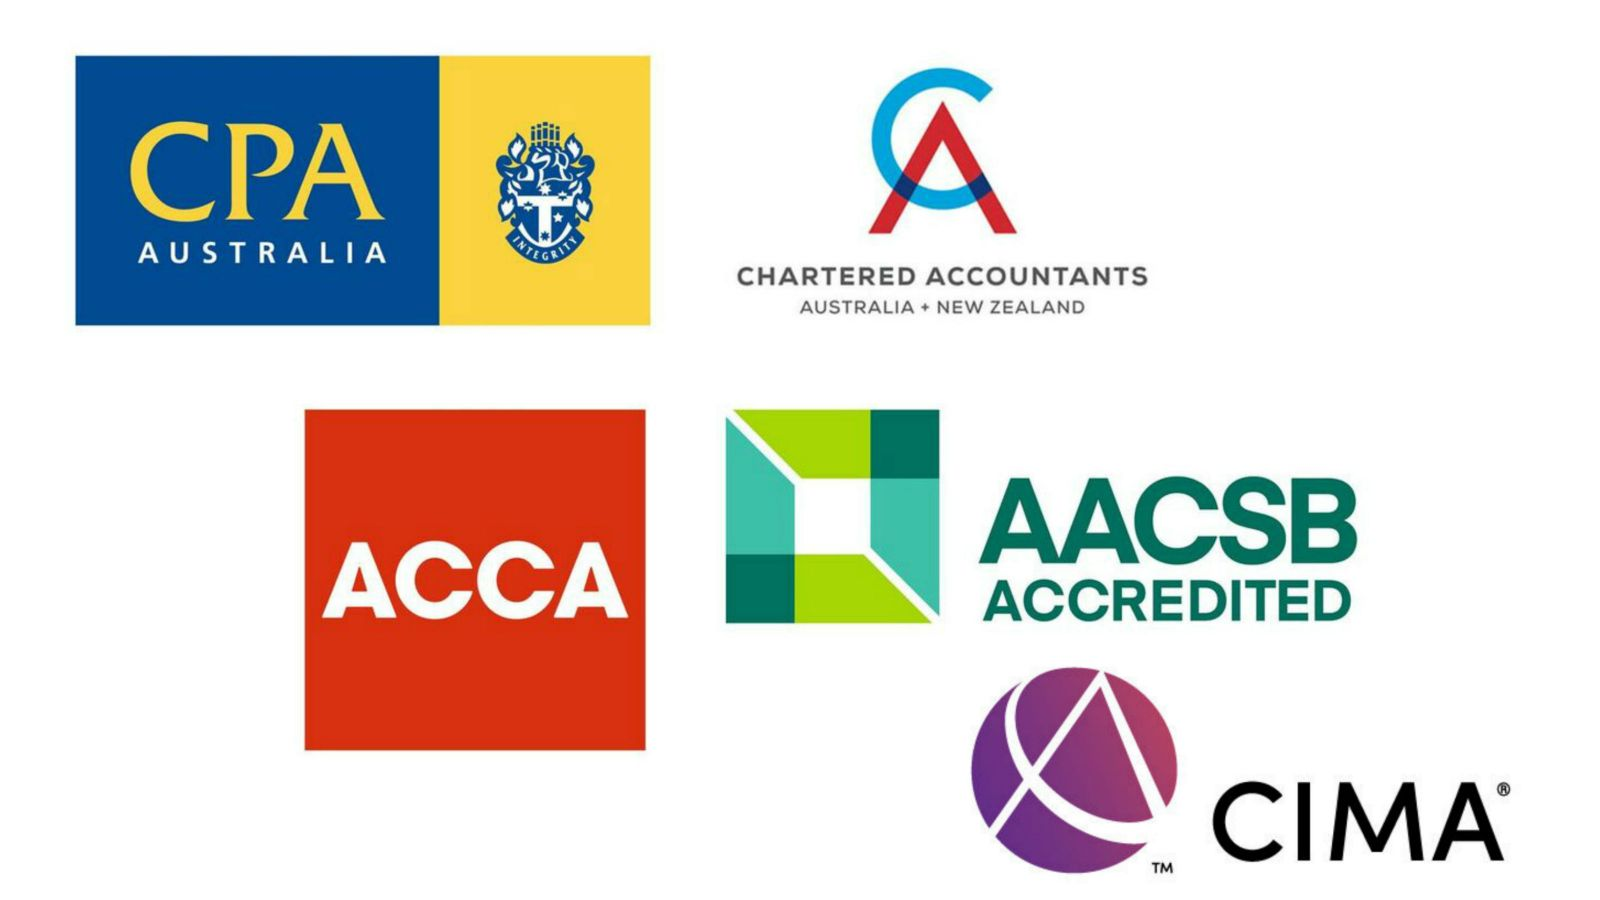 Logos for SACL accreditations.